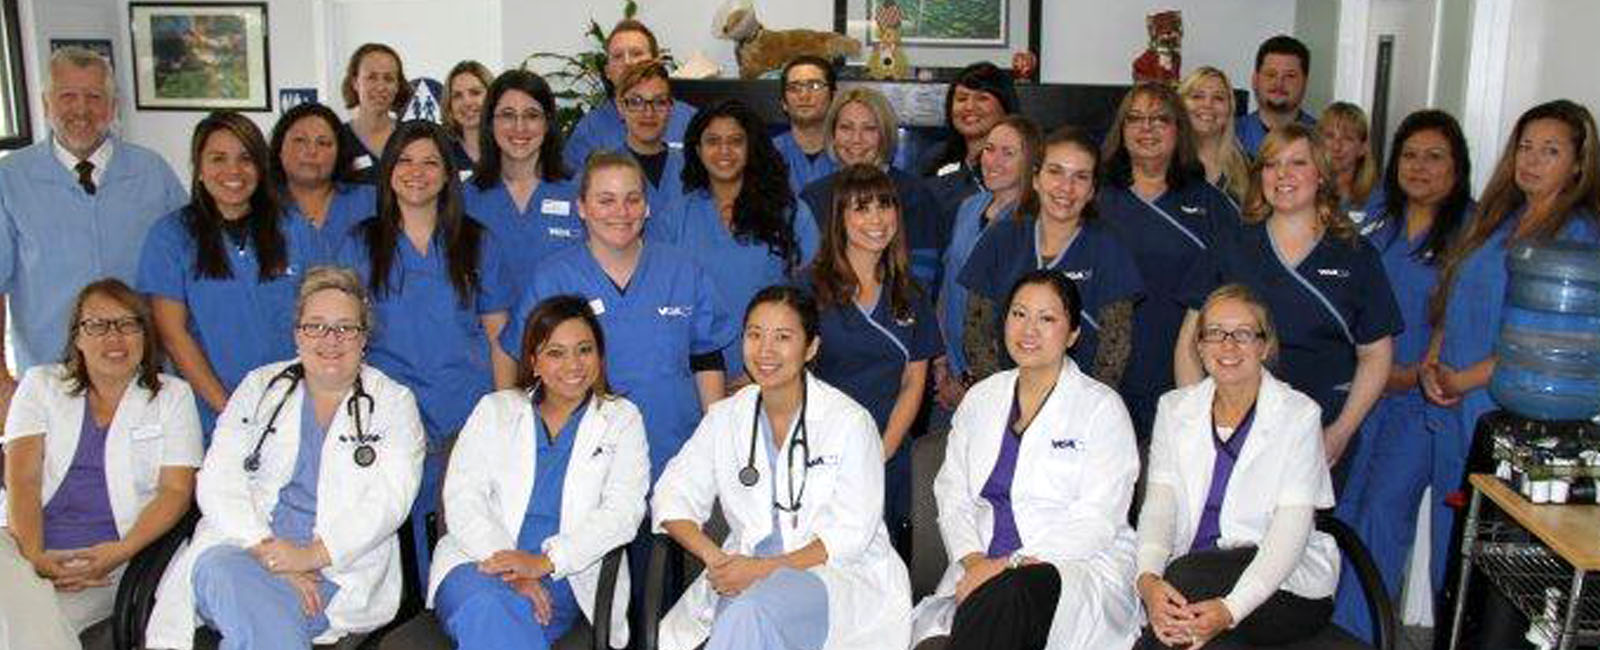 Homepage Team Picture of  VCA Central Animal Hospital